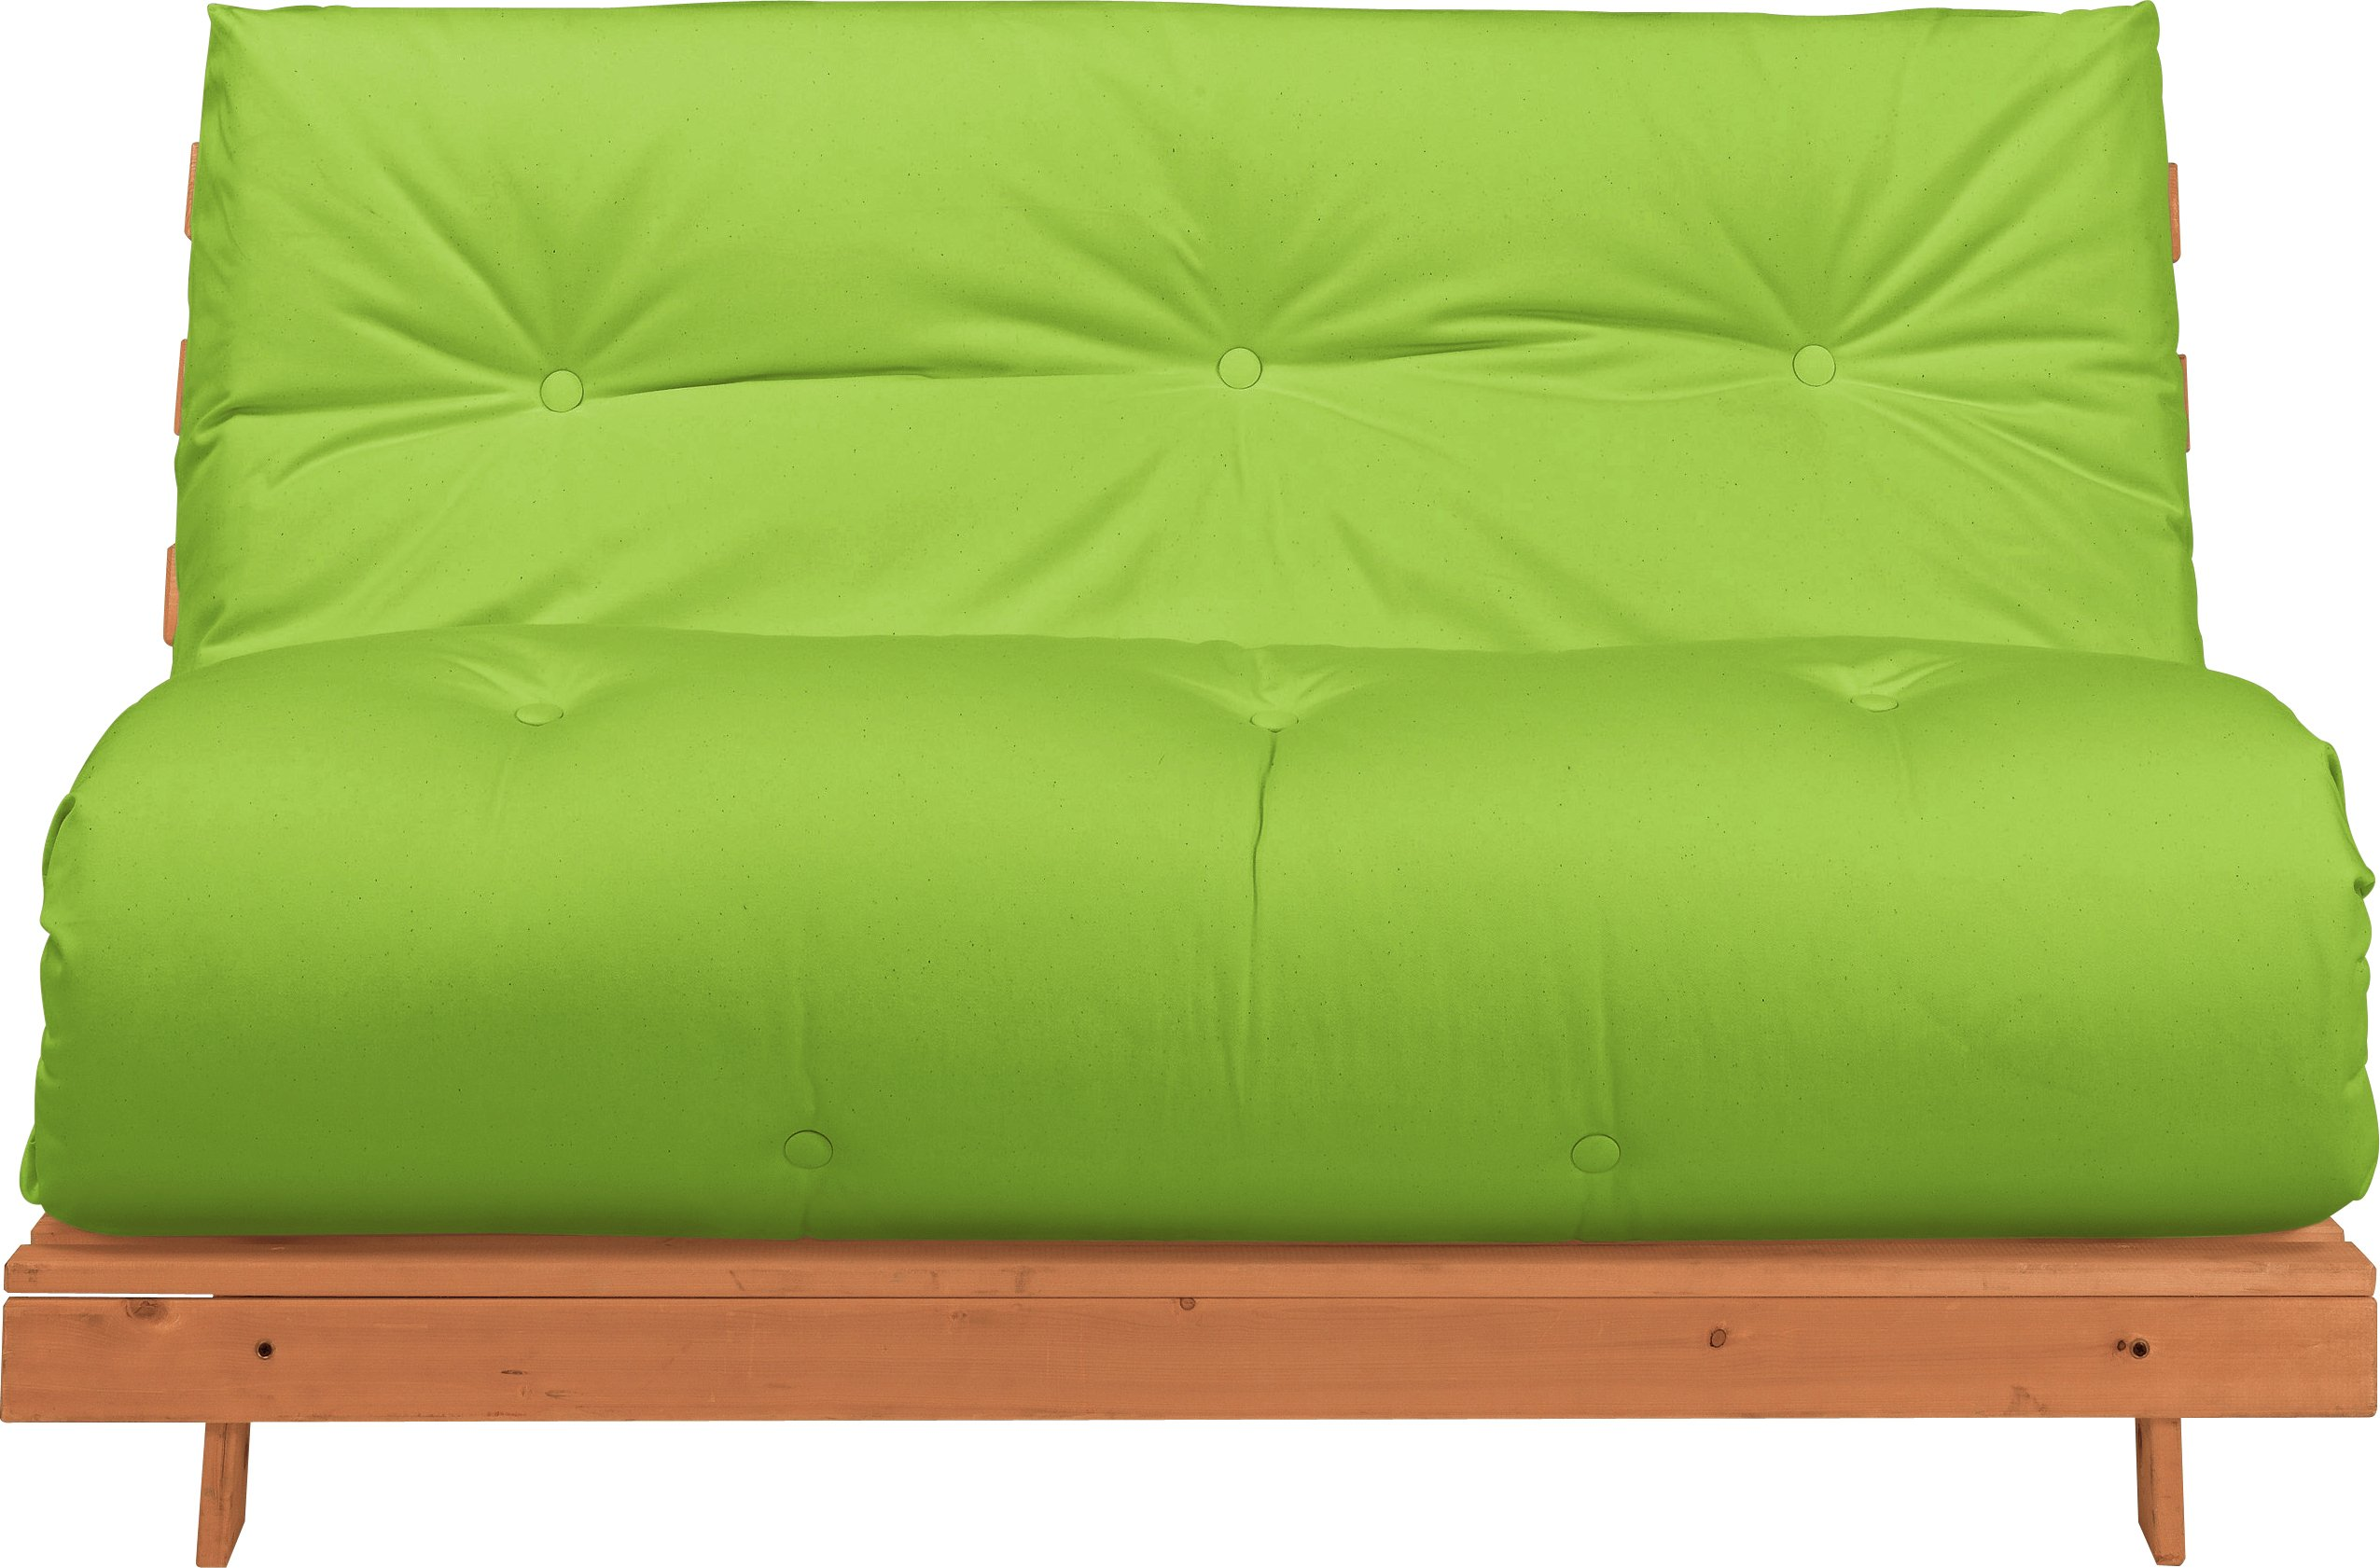 colourmatch tosa 2 seater futon sofa bed   apple green346 5934 argos futon   roselawnlutheran  rh   roselawnlutheran org